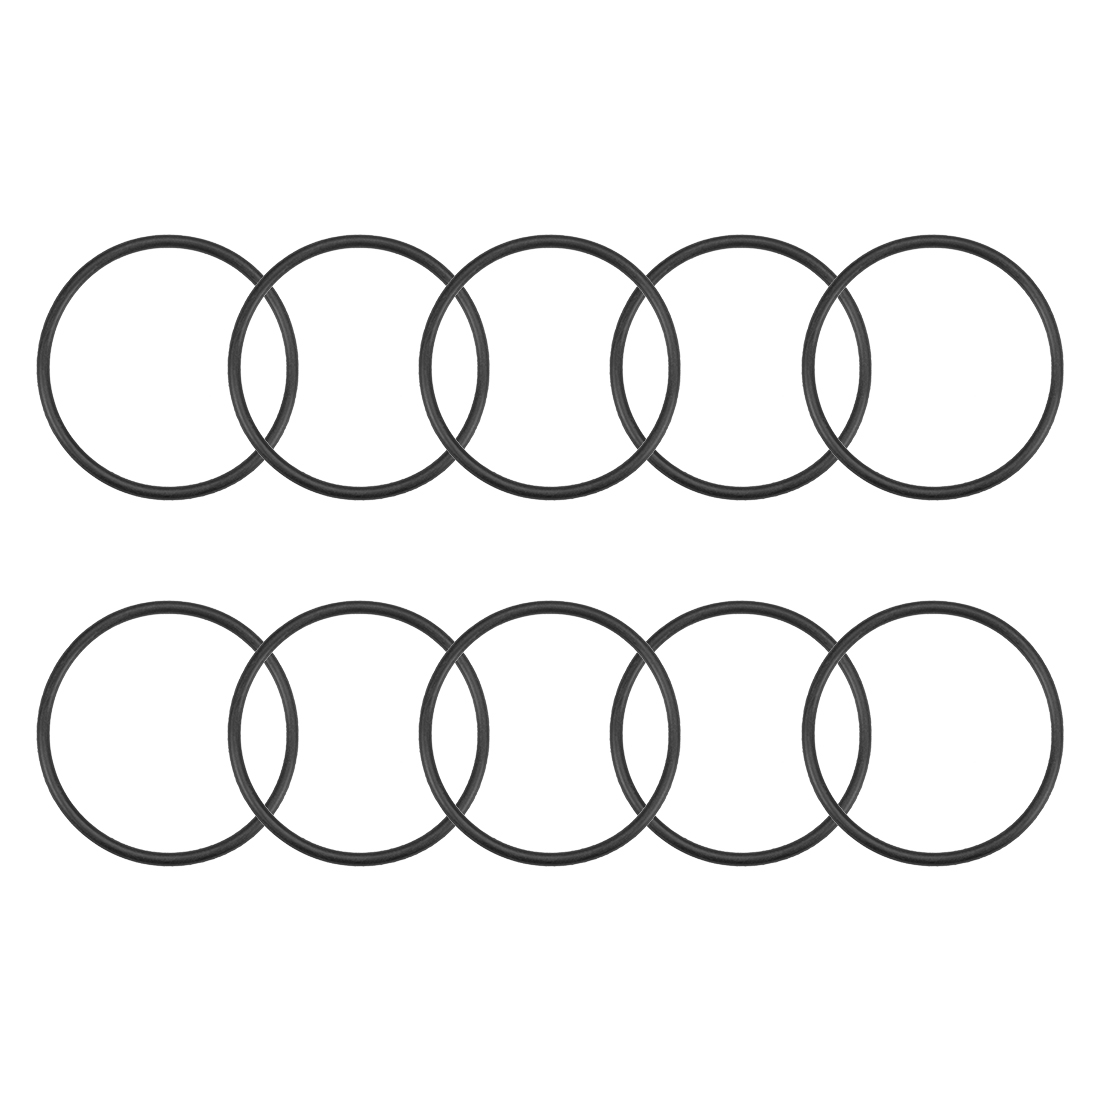 O-Rings Nitrile Rubber 45mm x 50.3mm x 2.65mm Round Seal Gasket 10 Pcs